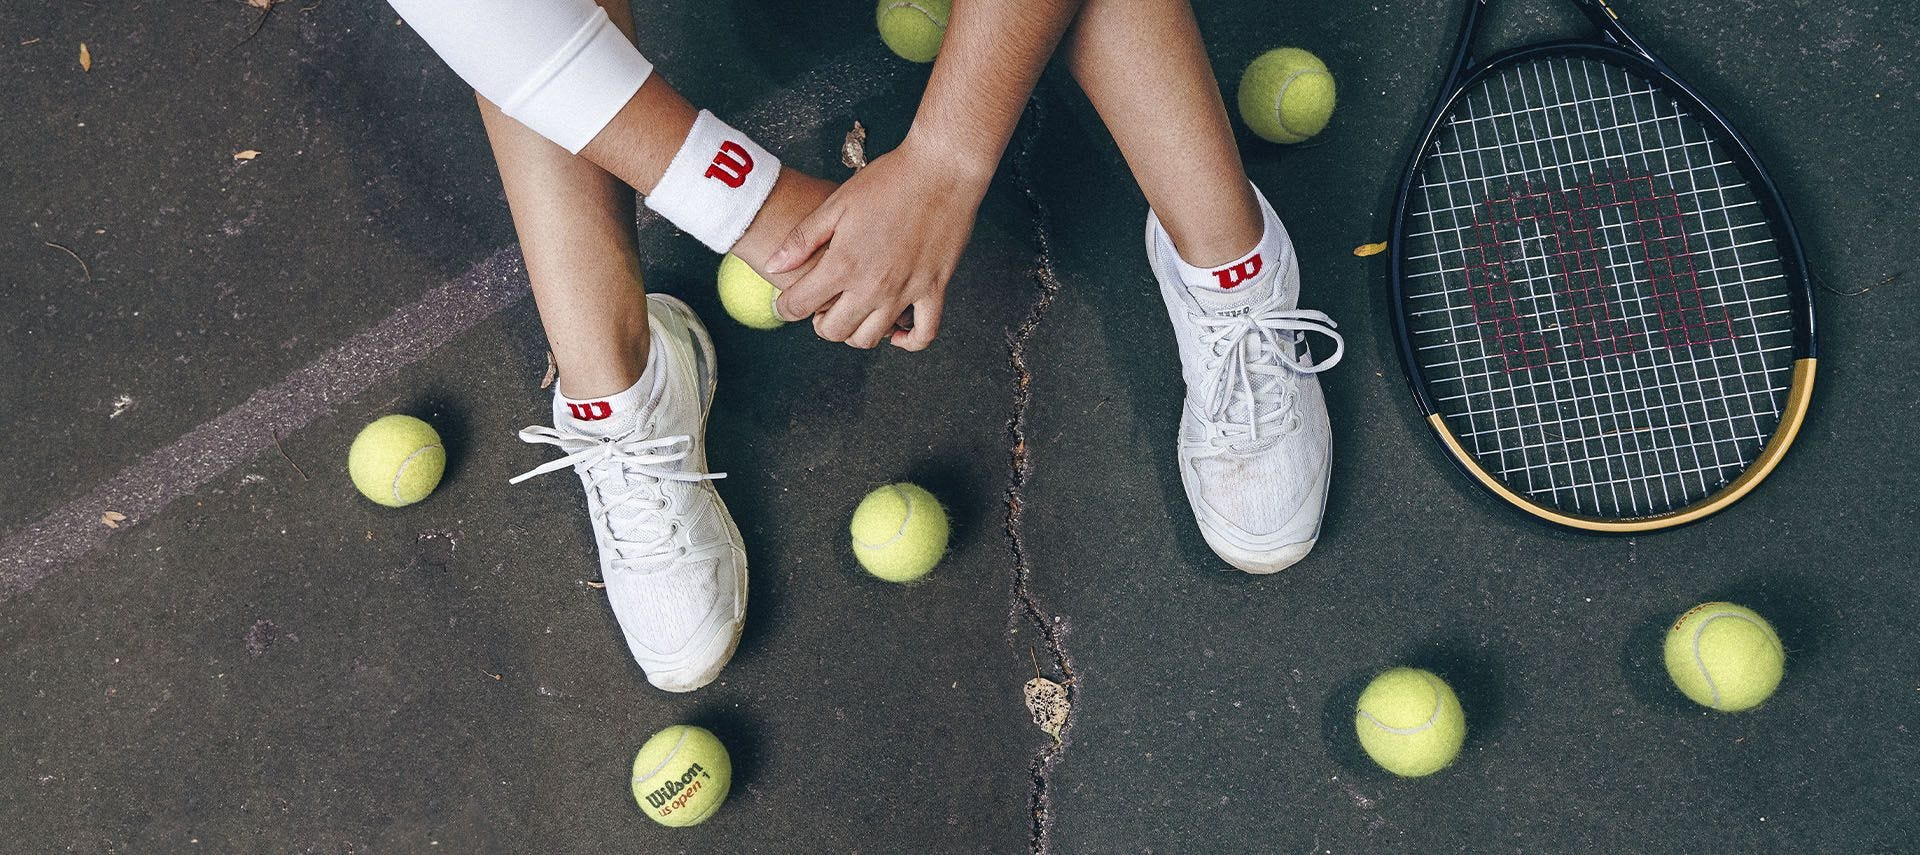 Aerial shot of a tennis player surrounded by tennis balls